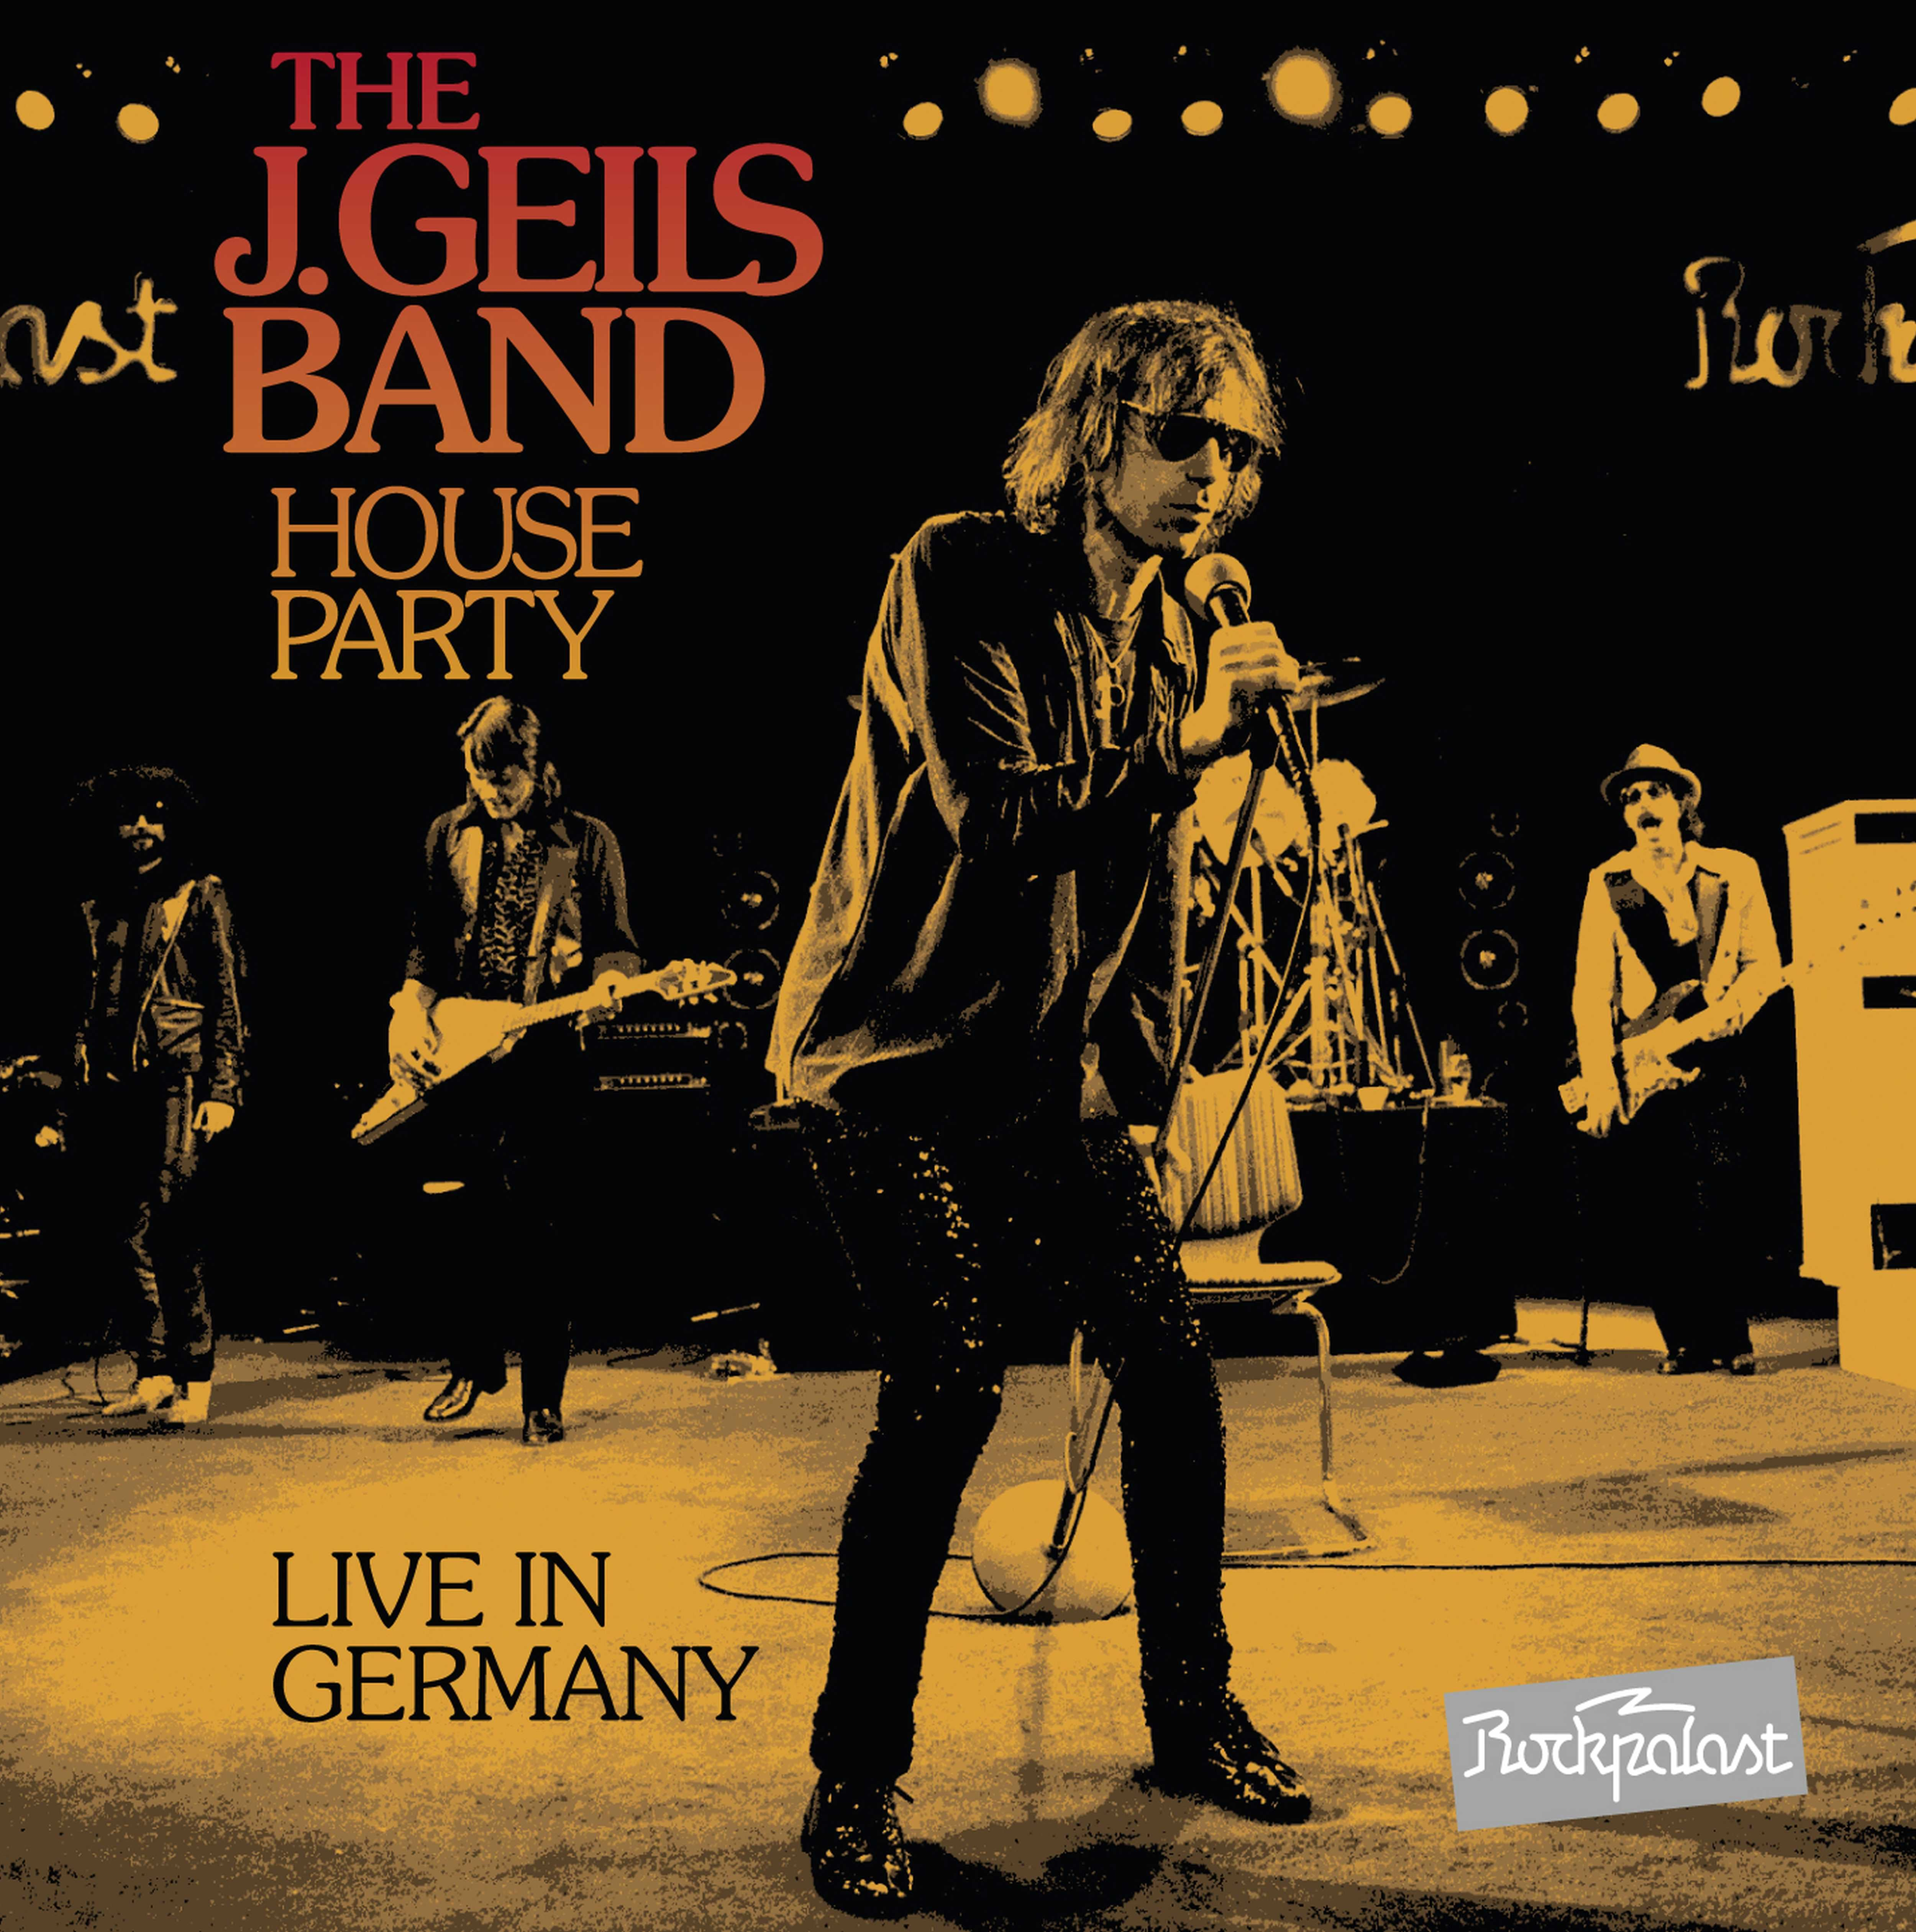 J. Geils Band: House Party - Live in Germany